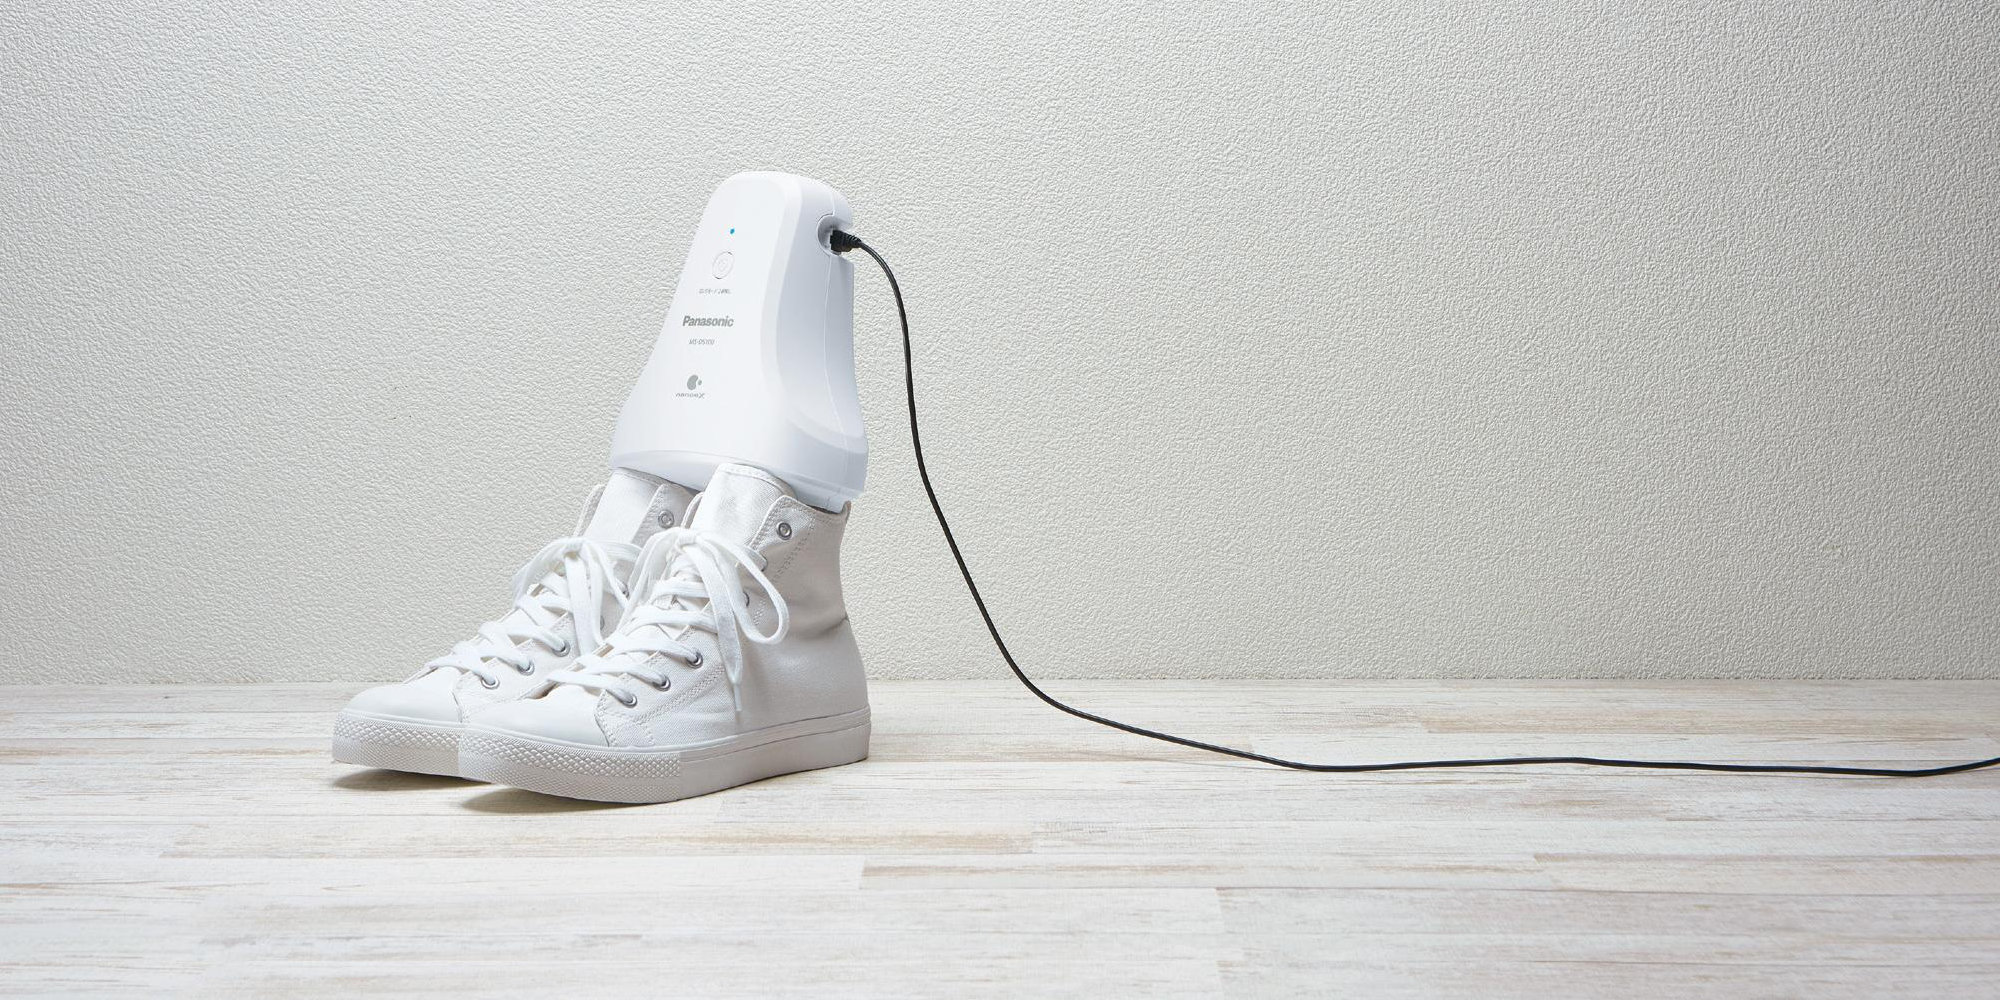 Panasonic's latest gadget makes your stinky shoes smell new… in five hours